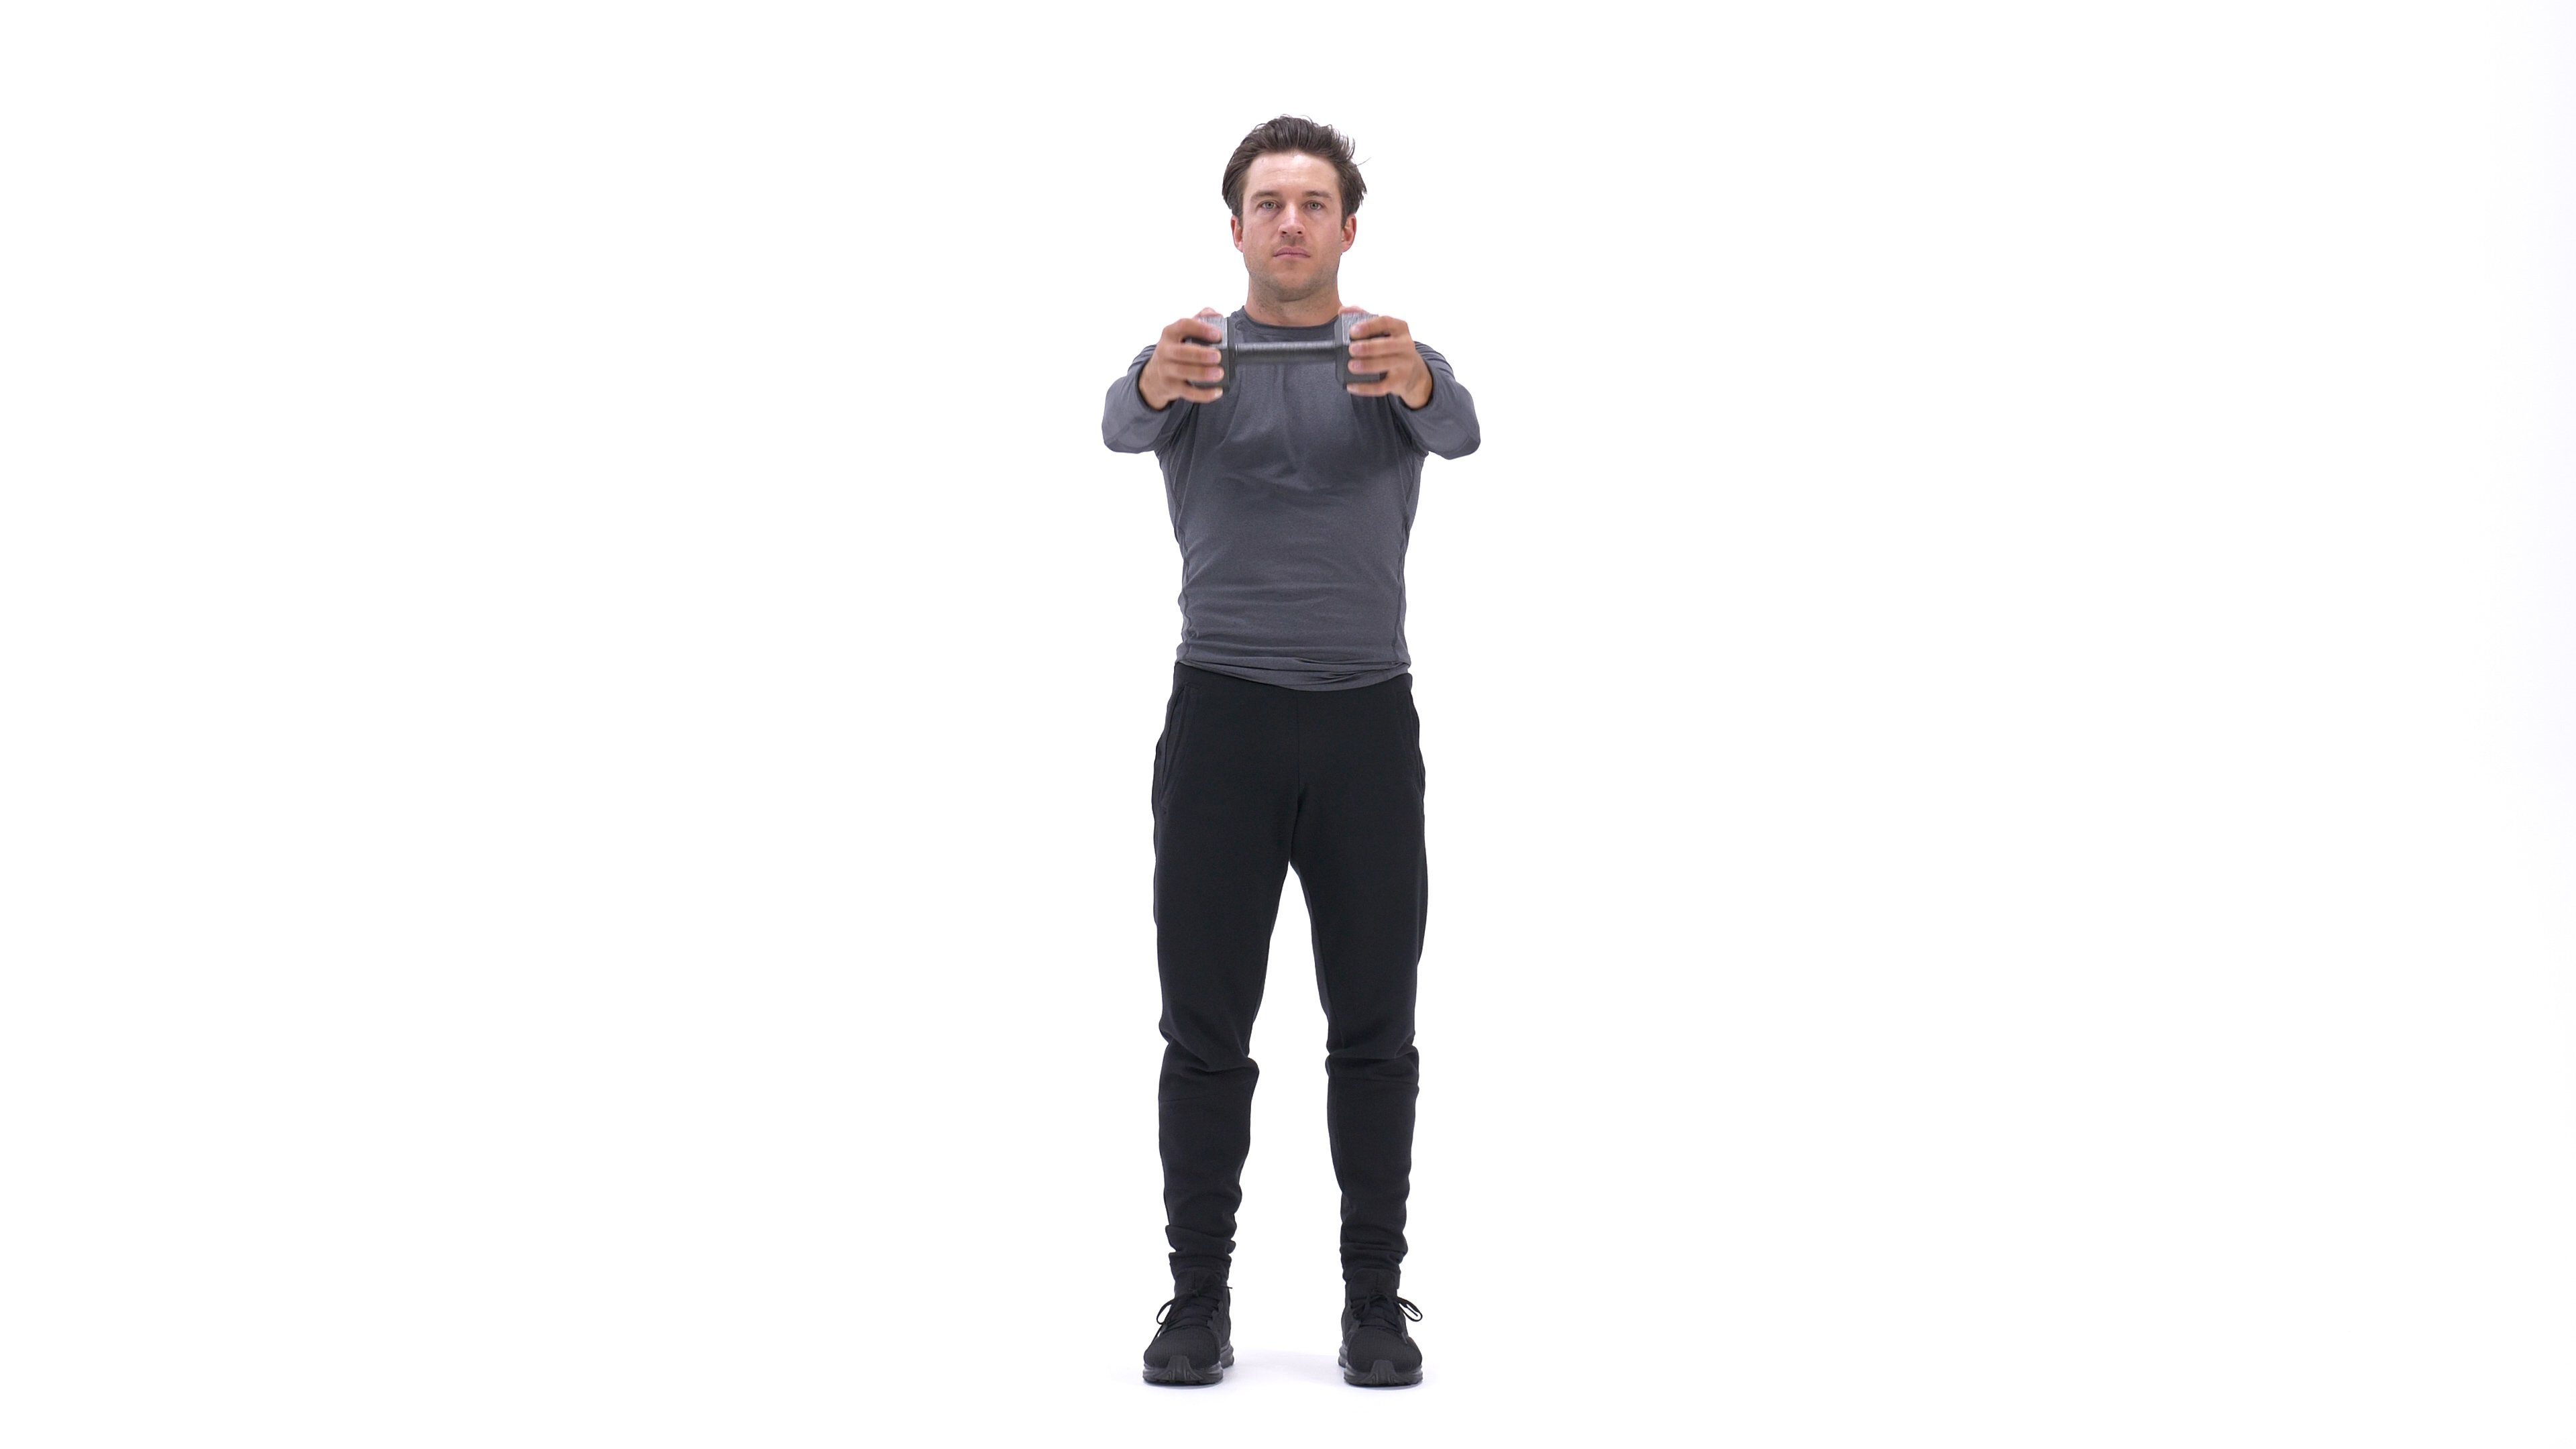 Single-dumbbell front raise image